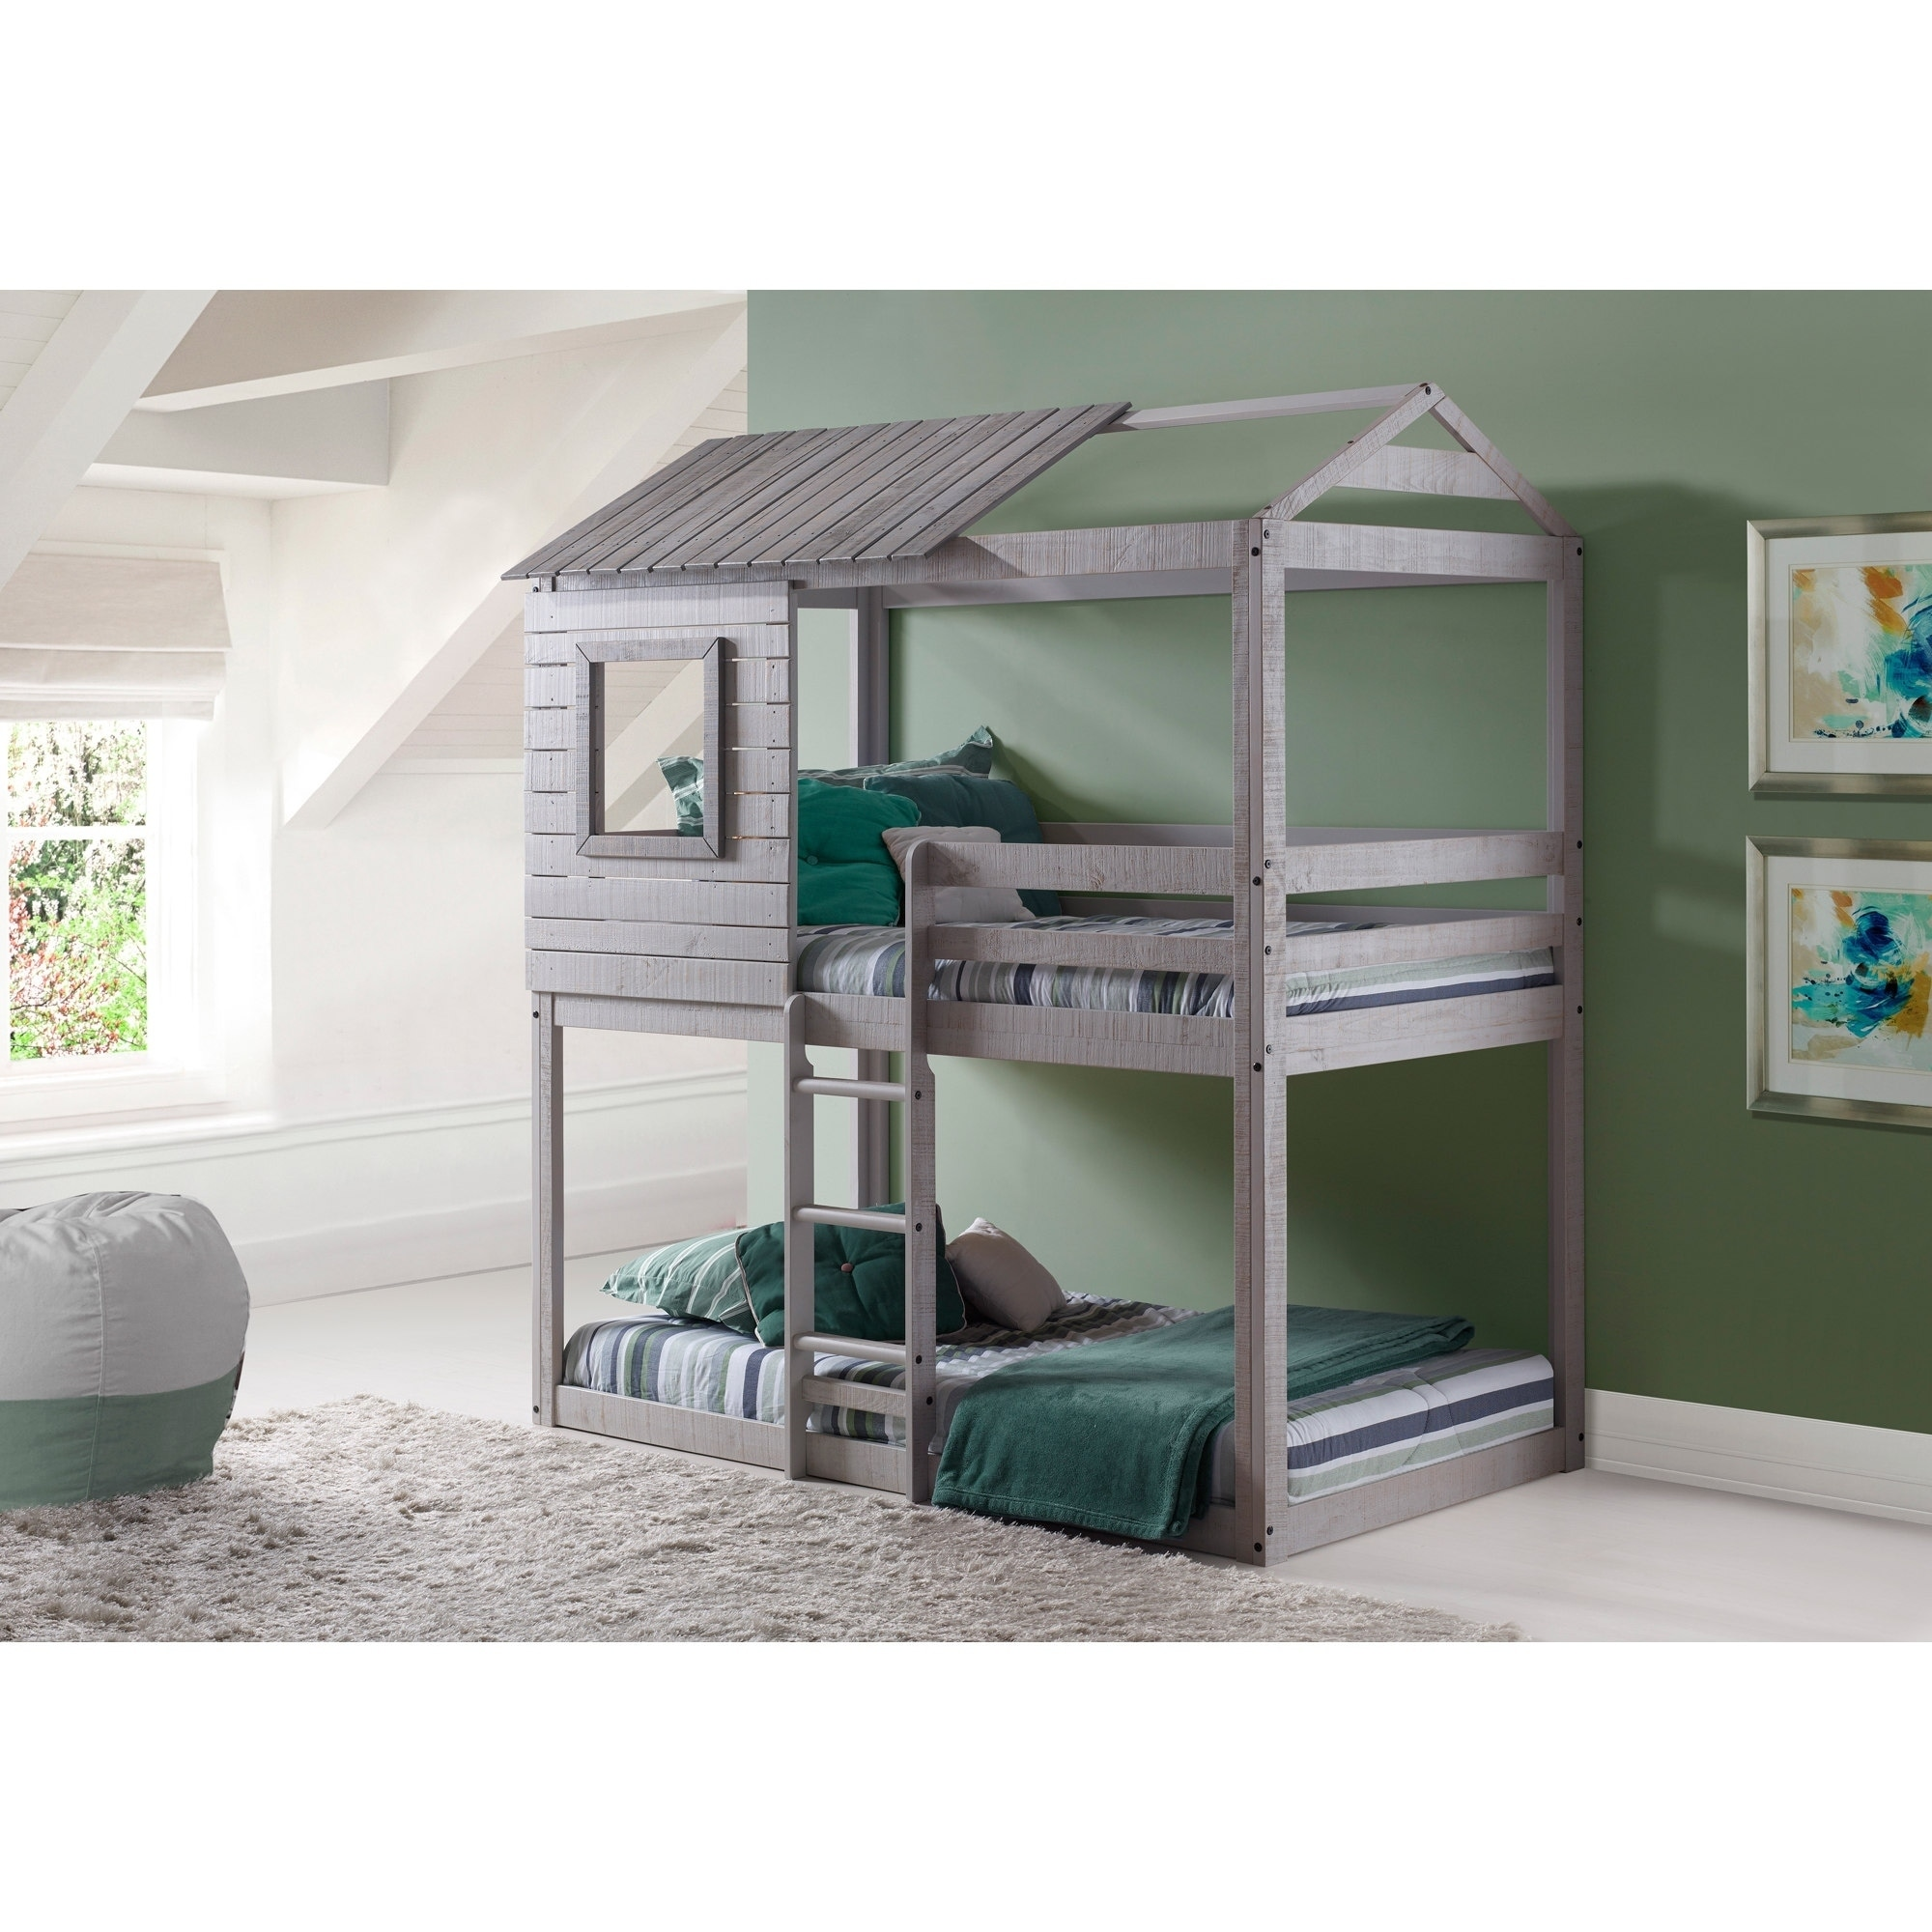 Childrens Beds With Pull Out Bed Underneath Buy Kids Toddler Beds Online At Overstock Our Best Kids